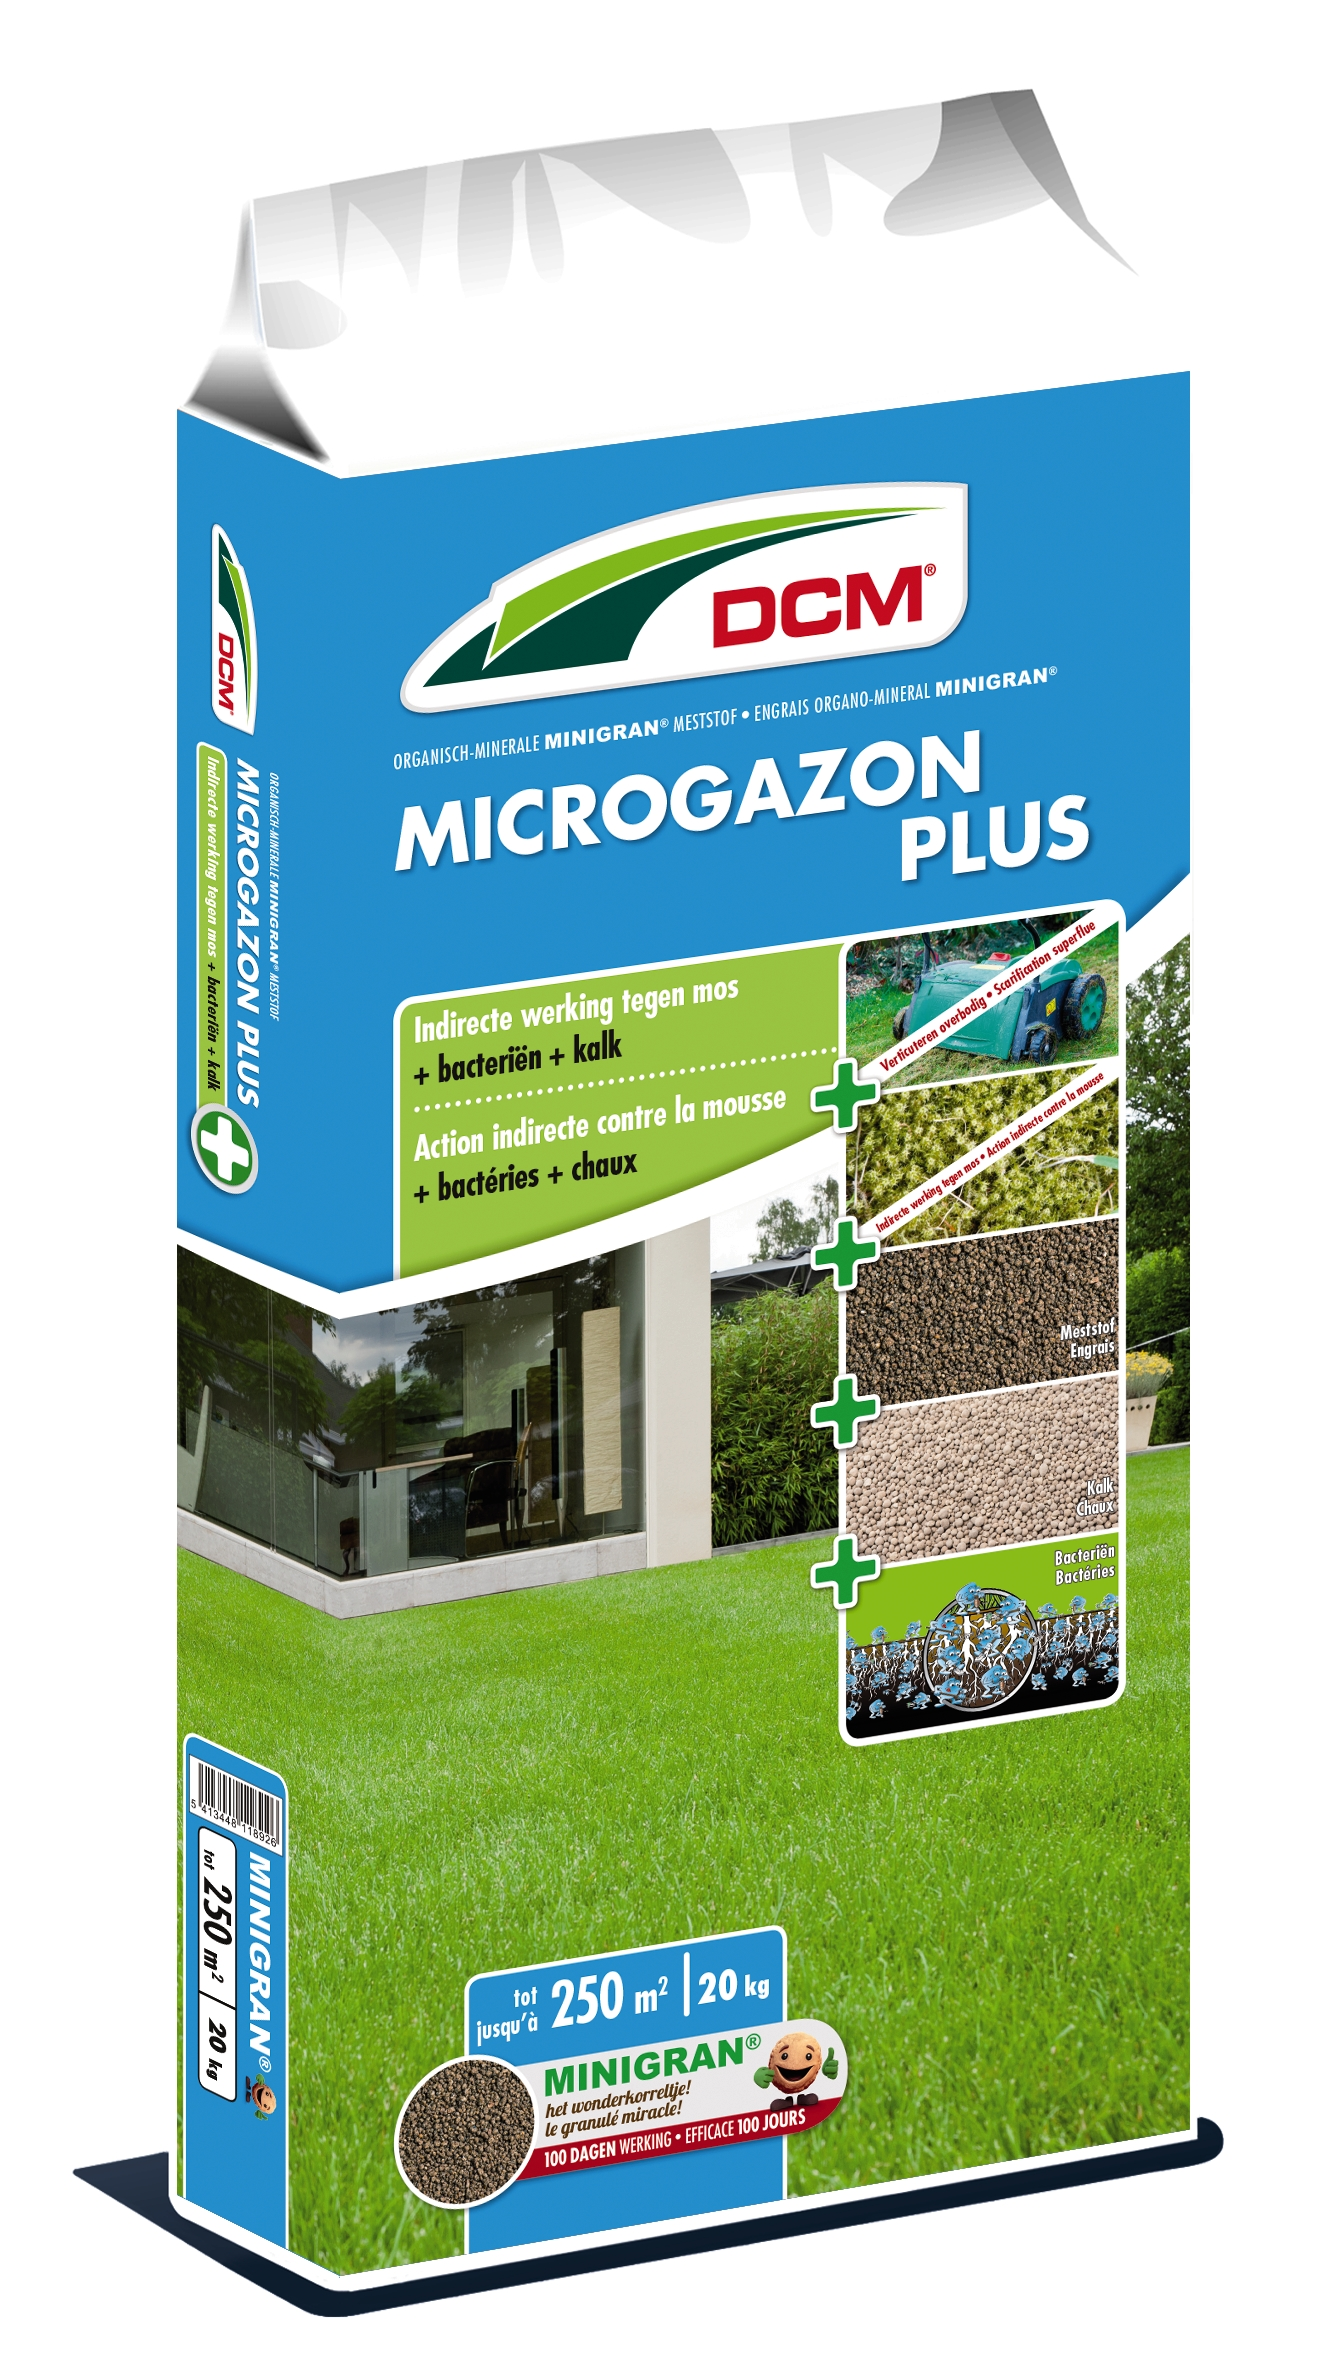 Dcm Microgazon Plus